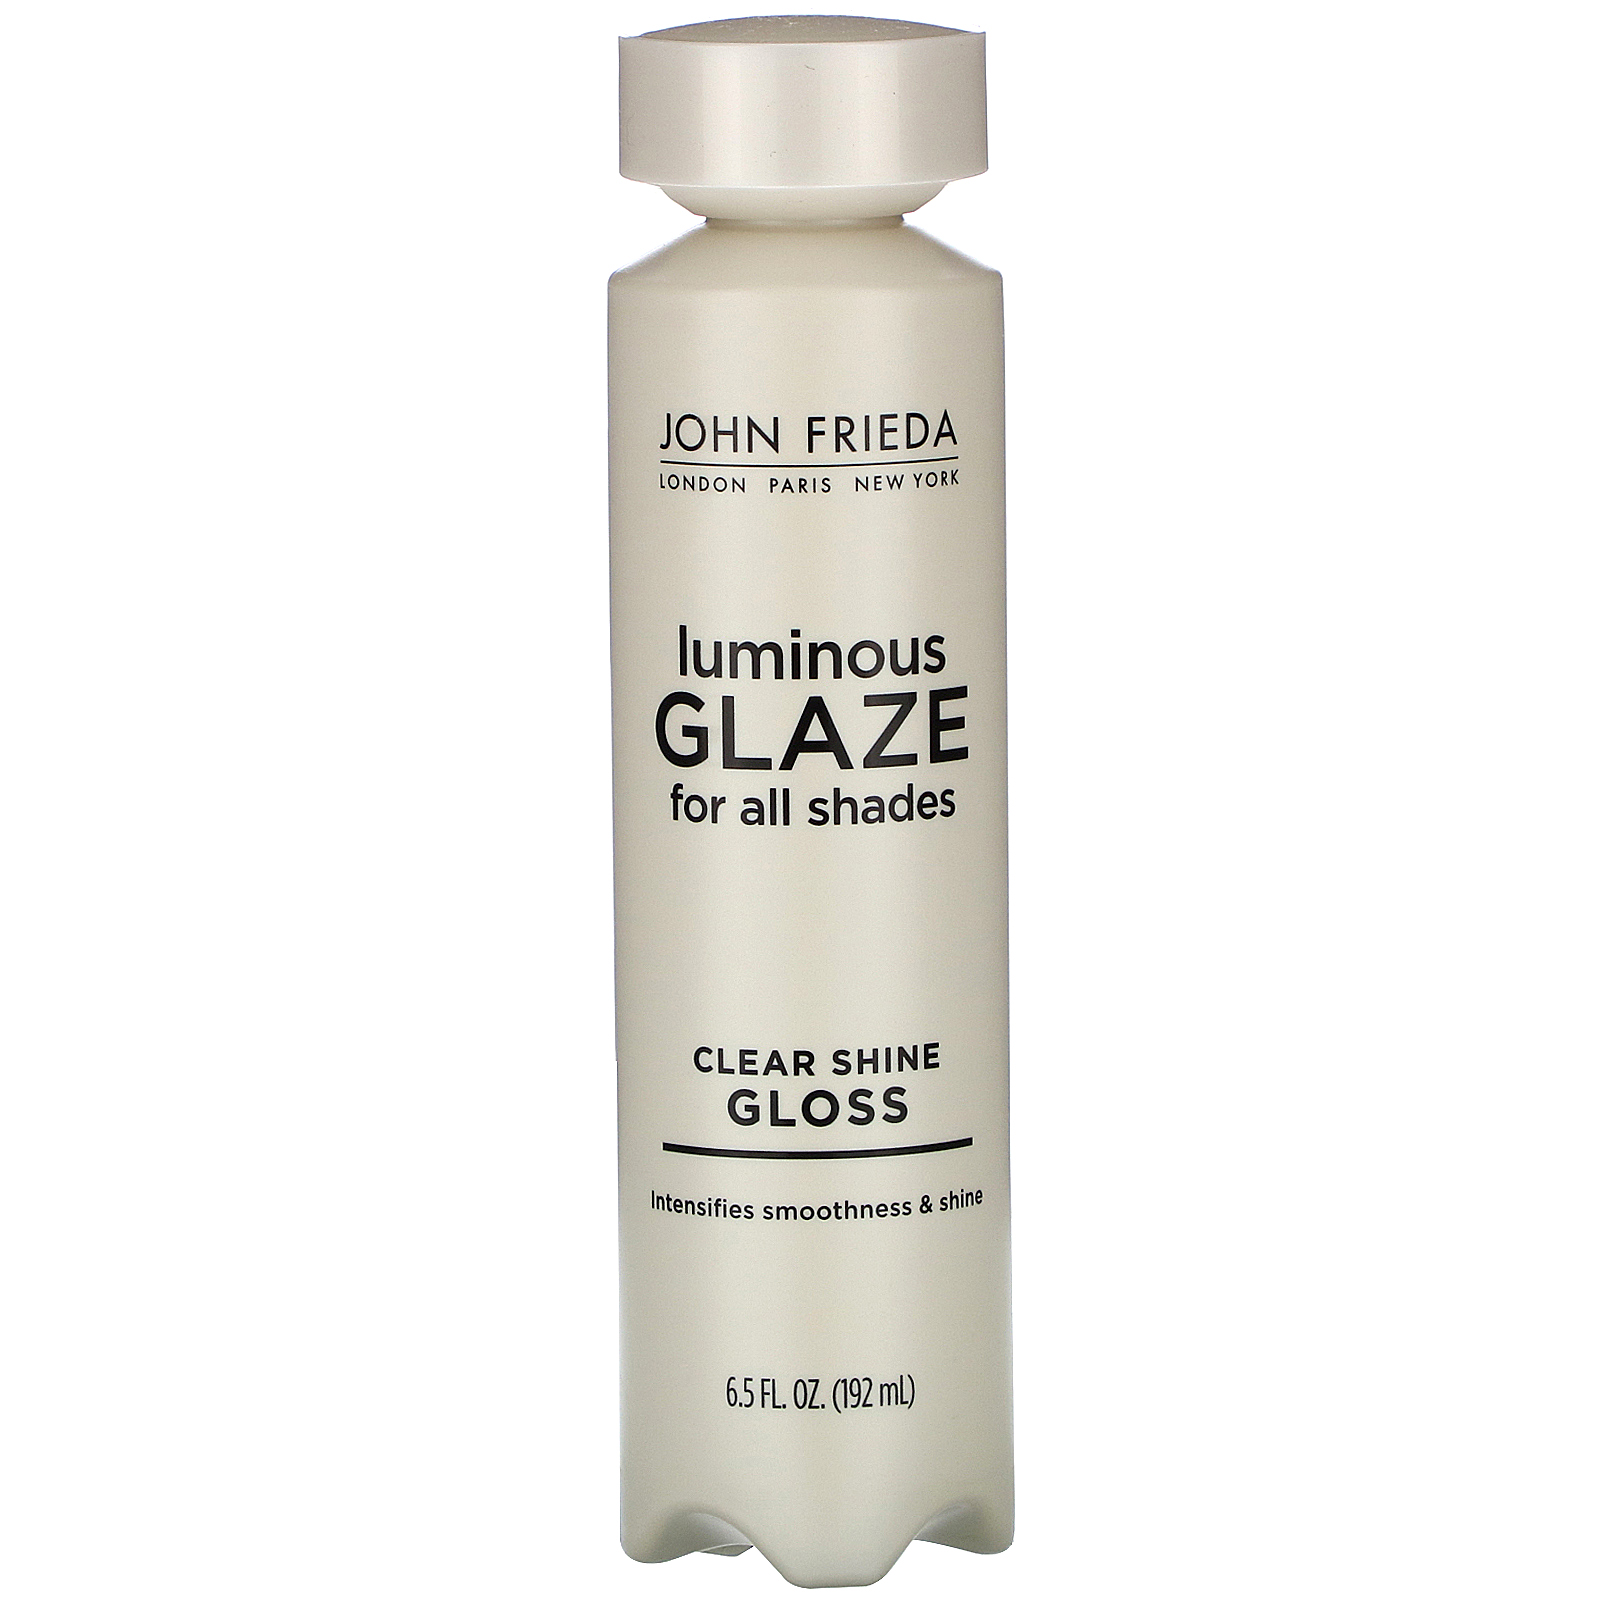 John Frieda, Luminous Glaze, Clear Shine Gloss,  6.5 fl oz (192 ml)